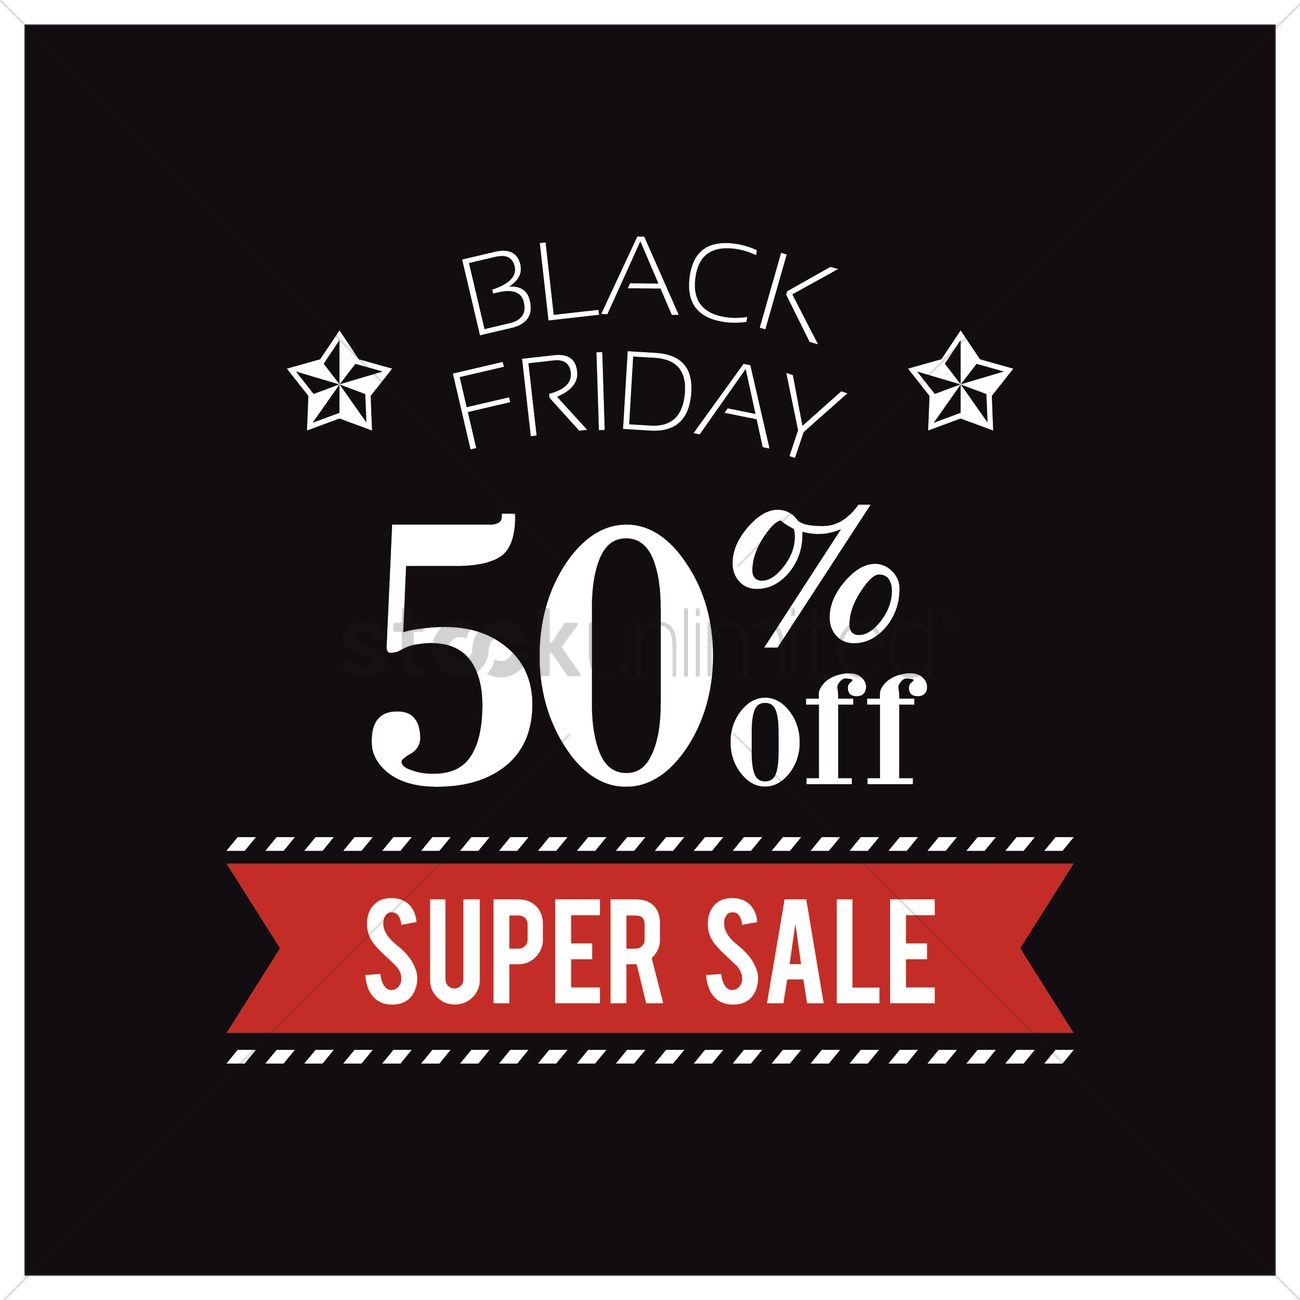 Black friday sale wallpaper Vector Image   1583530 StockUnlimited 1300x1300